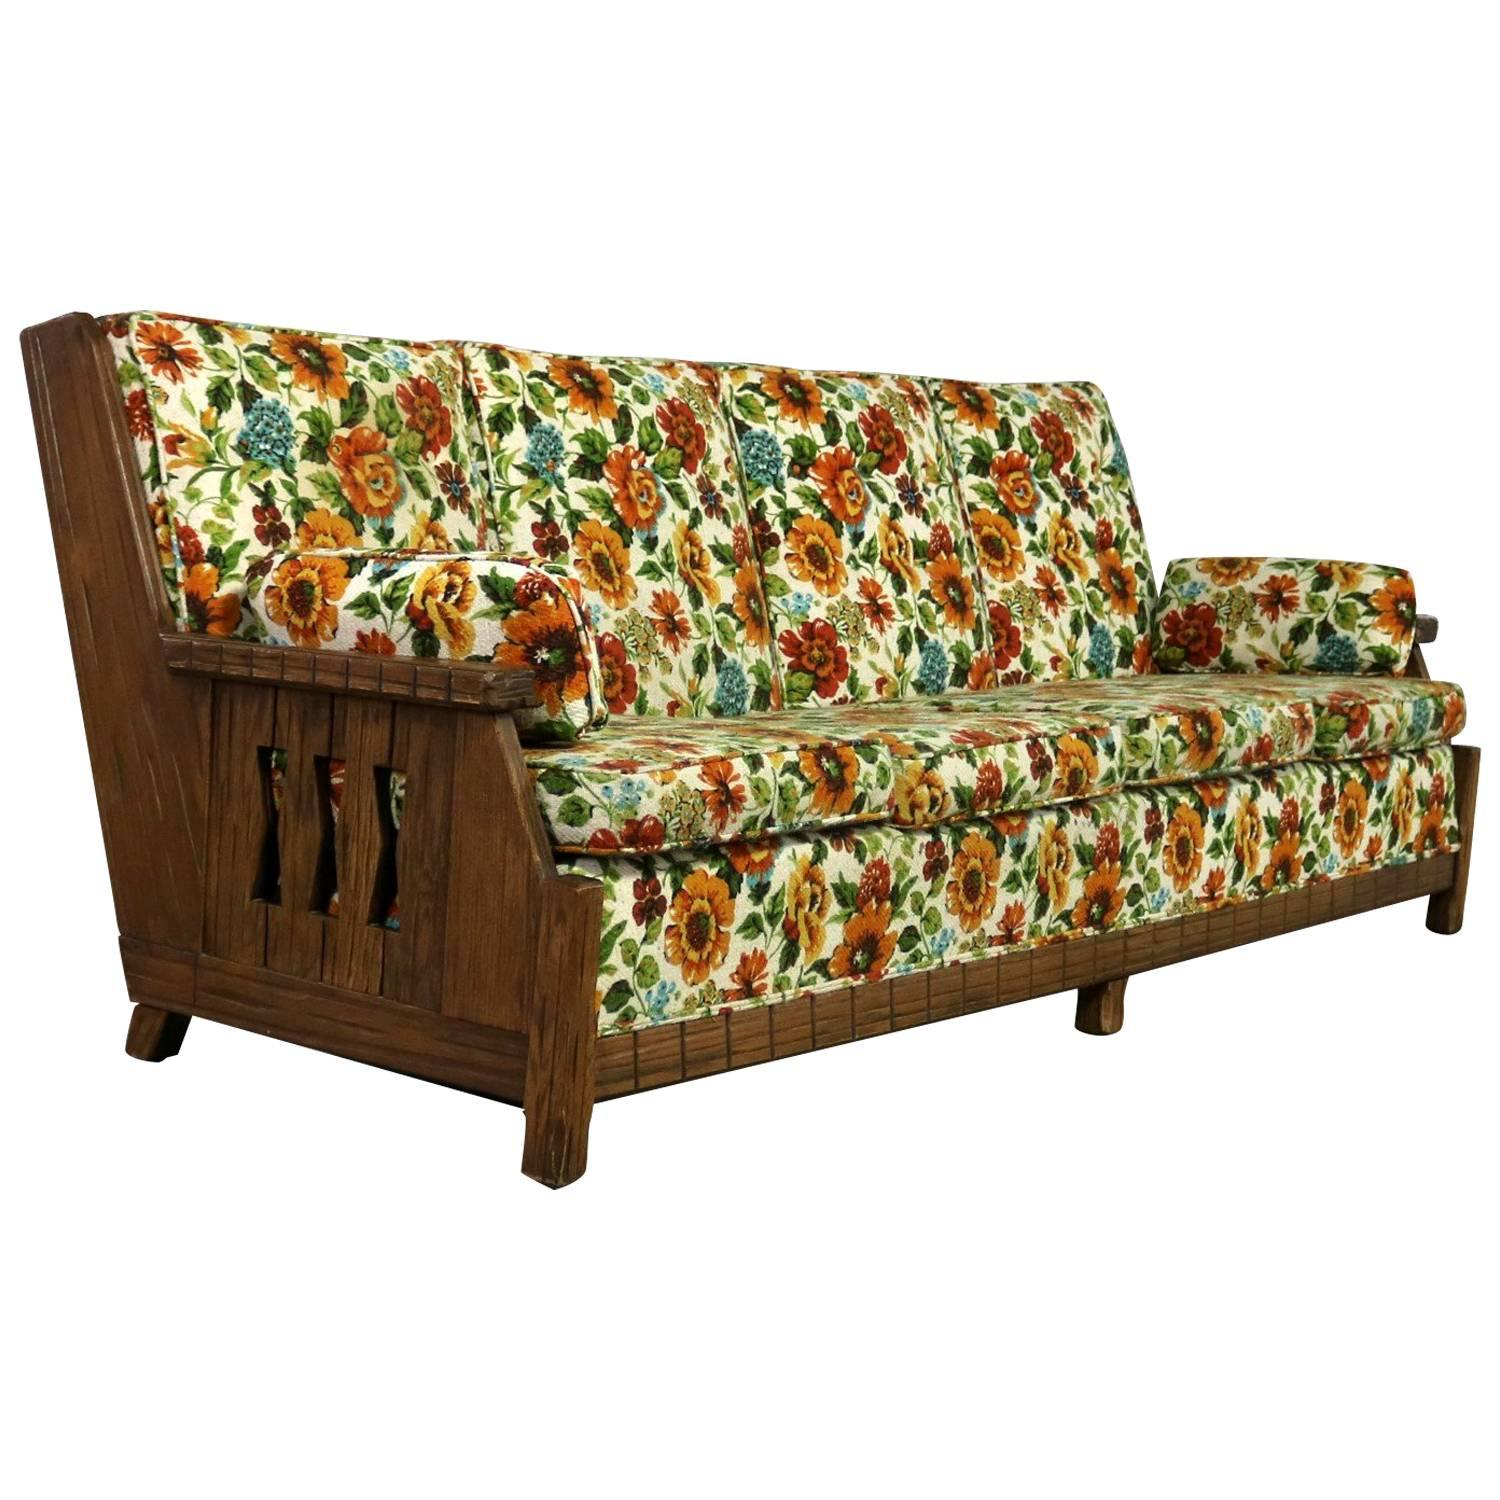 Charmant Ranch Oak Western Style Sofa Attributed To A. Brandt Company